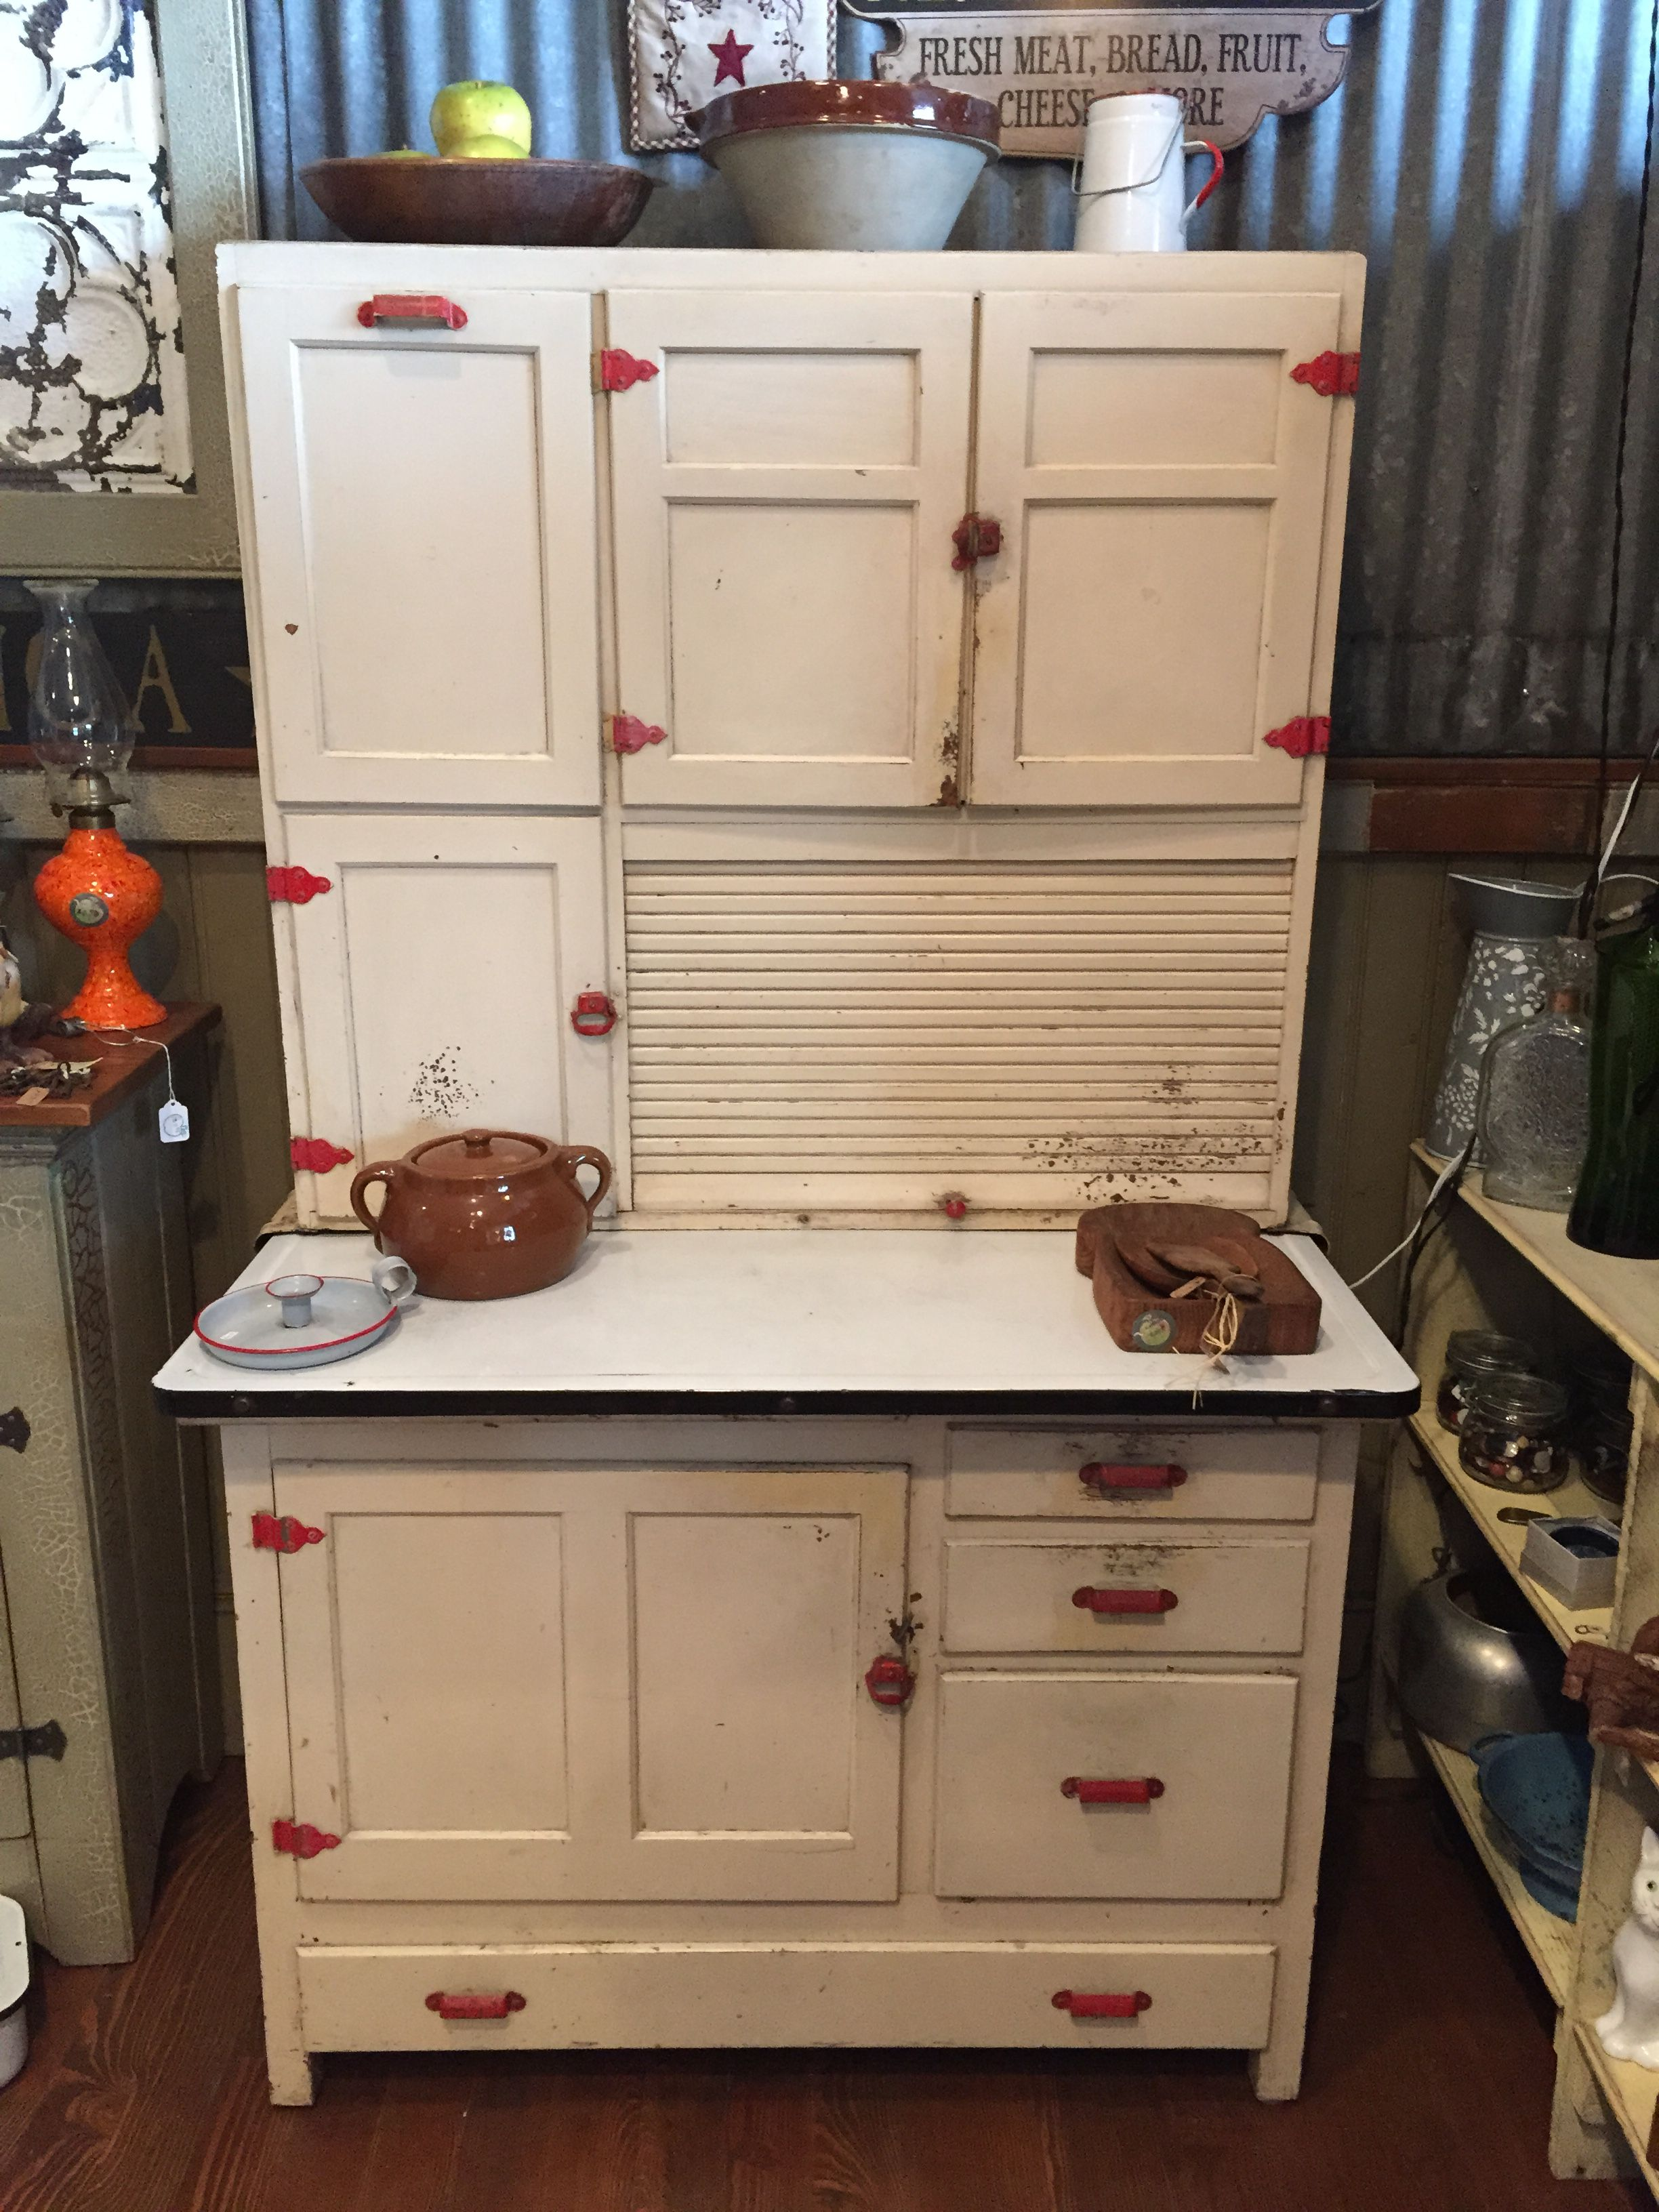 Google Images Of Vintage Hoosier Cabinet Google Search Vintage Kitchen Cabinets Vintage Cabinets Kitchen Cabinets For Sale